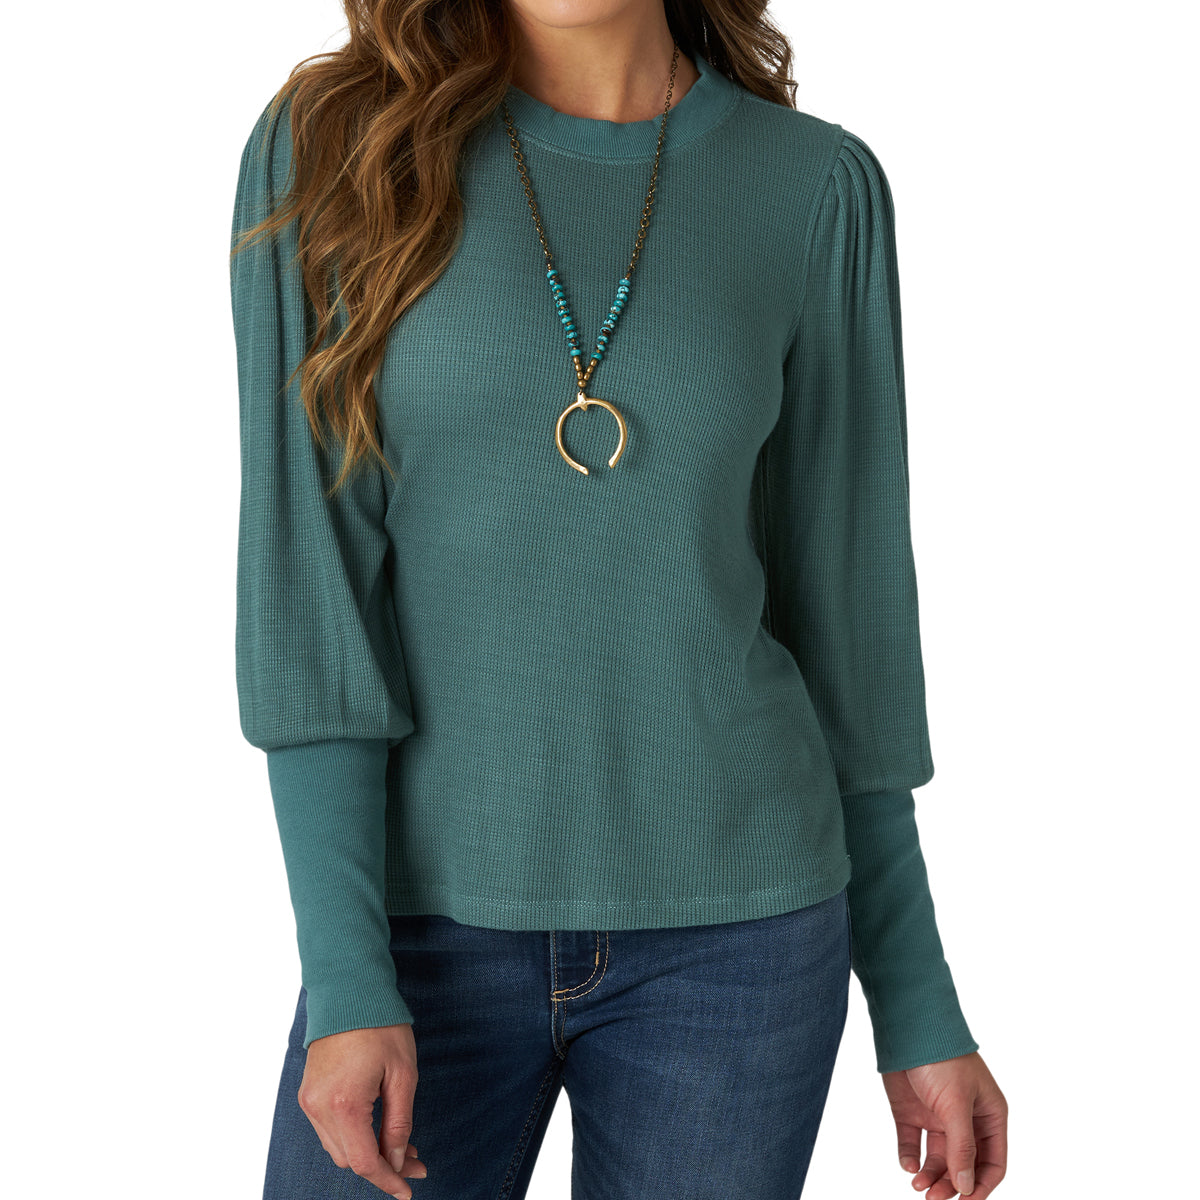 Wrangler Women's Retro Waffle Knit Top - Sage Green